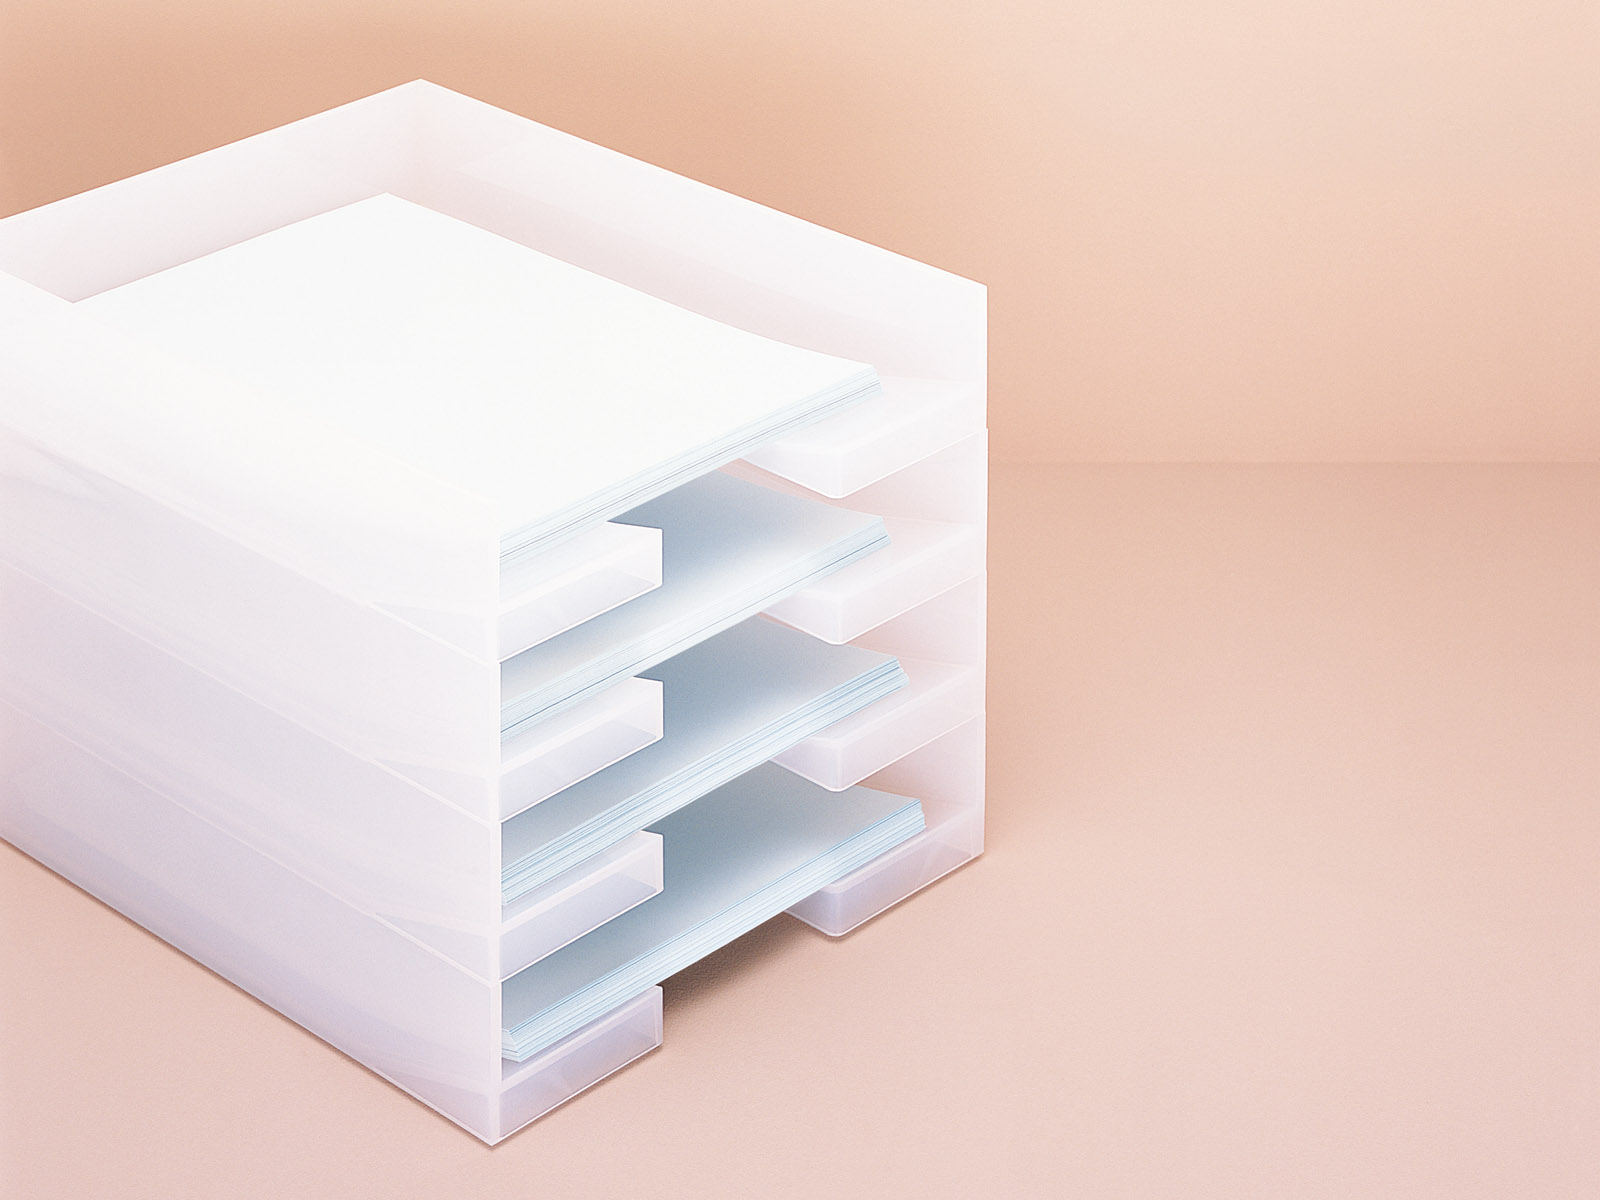 Office Supplies picture 22583